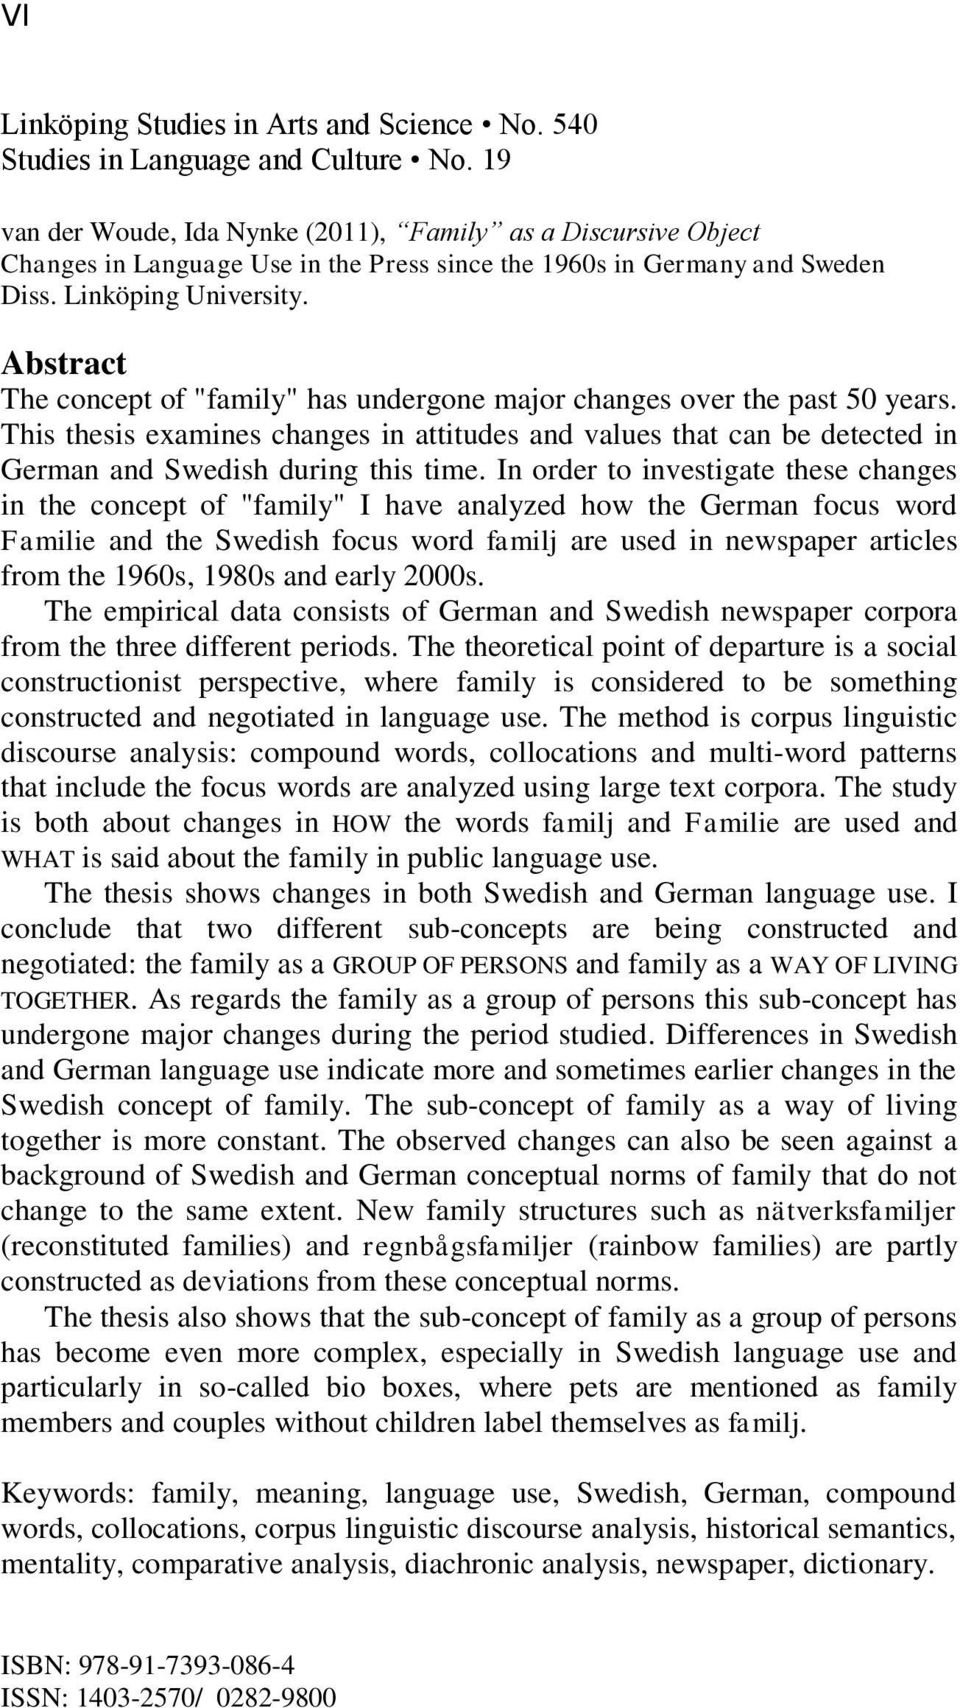 "Abstract The concept of ""family"" has undergone major changes over the past 50 years. This thesis examines changes in attitudes and values that can be detected in German and Swedish during this time."